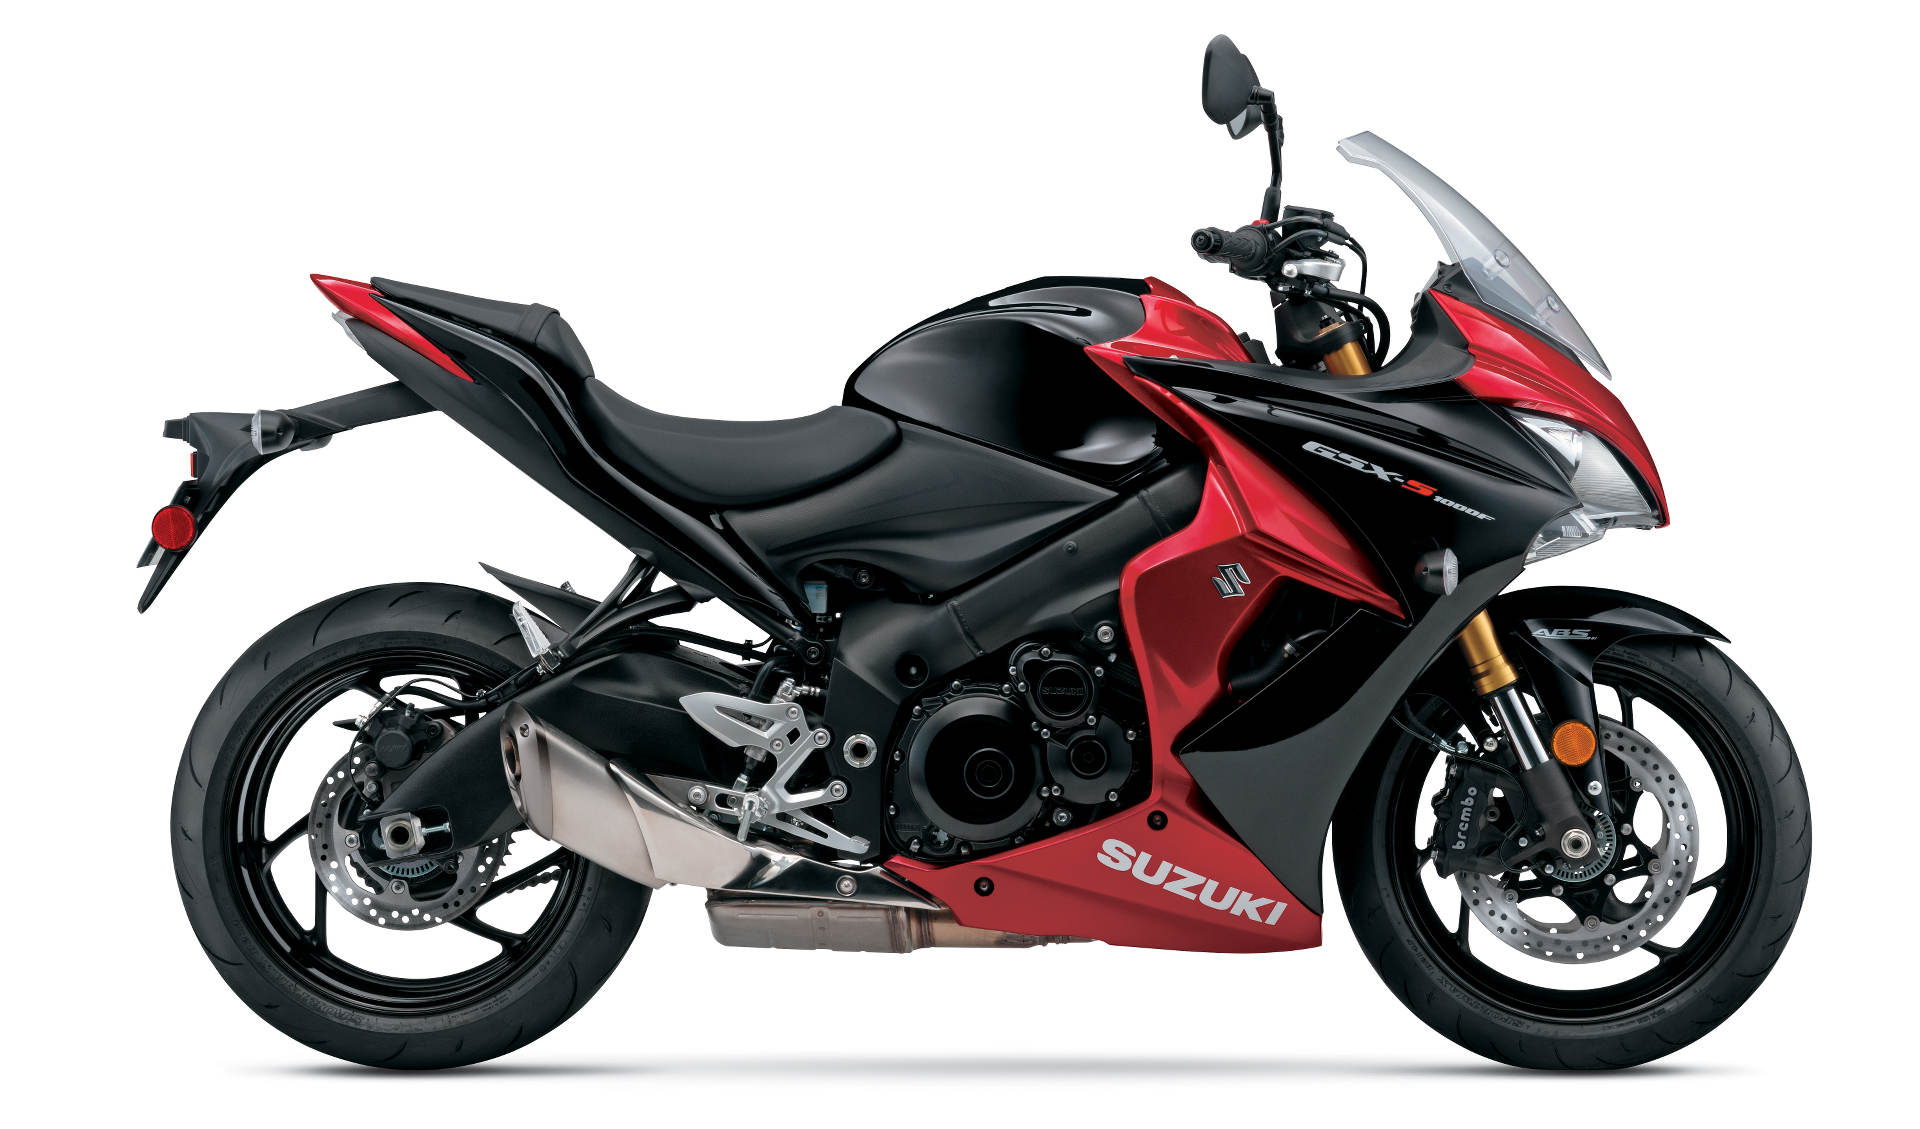 suzuki announces early release 2016 models including details on gsx s1000 family. Black Bedroom Furniture Sets. Home Design Ideas